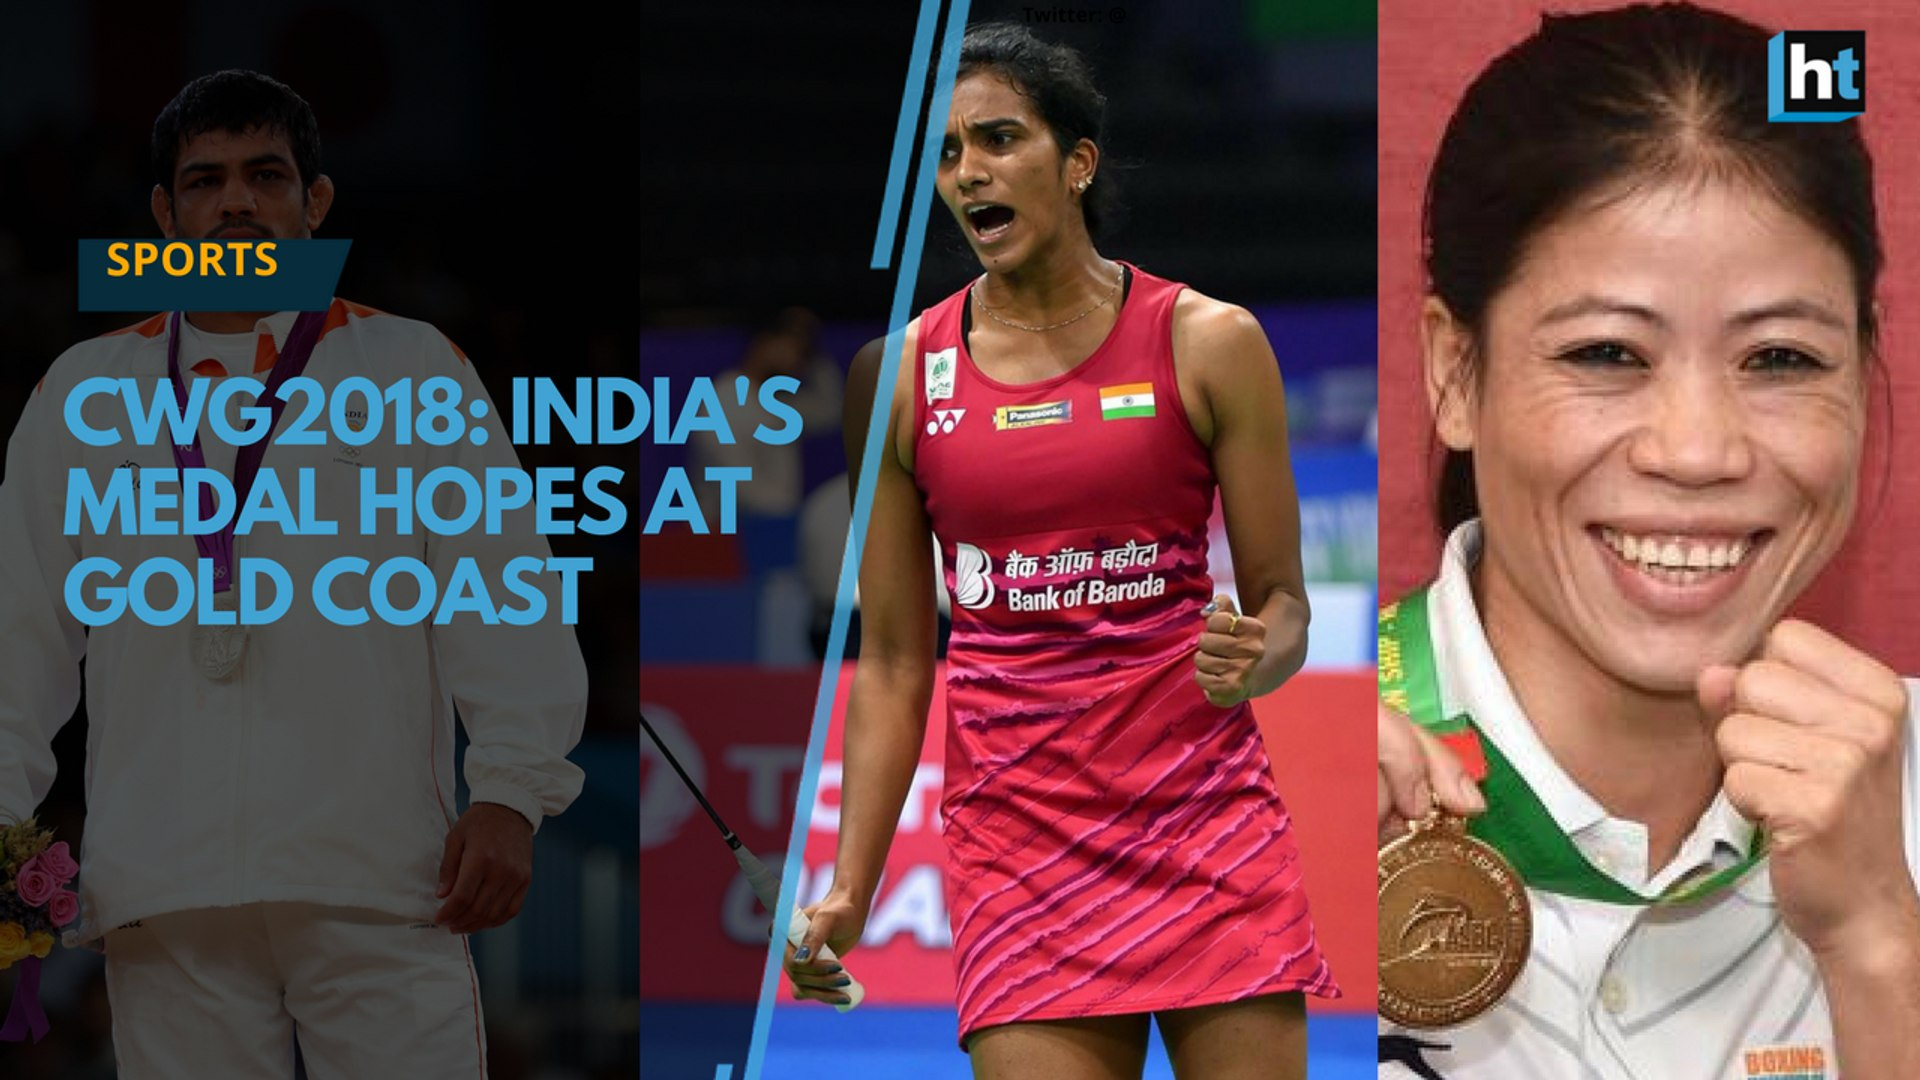 CWG 2018: India's best medal hopes at Gold Coast